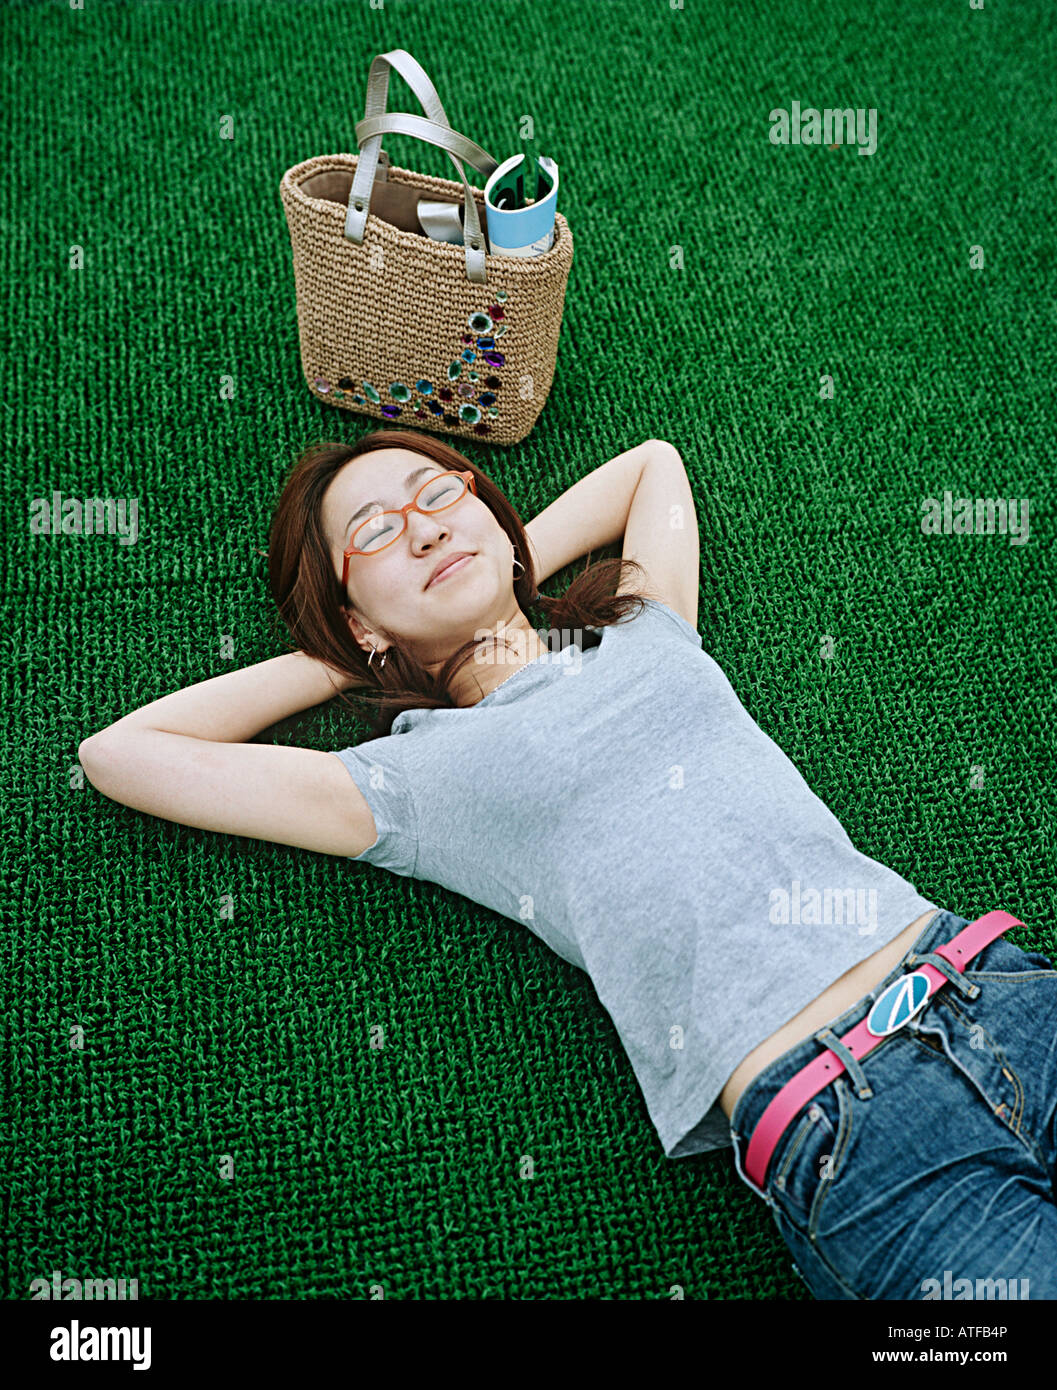 Young woman lying on artificial turf - Stock Image